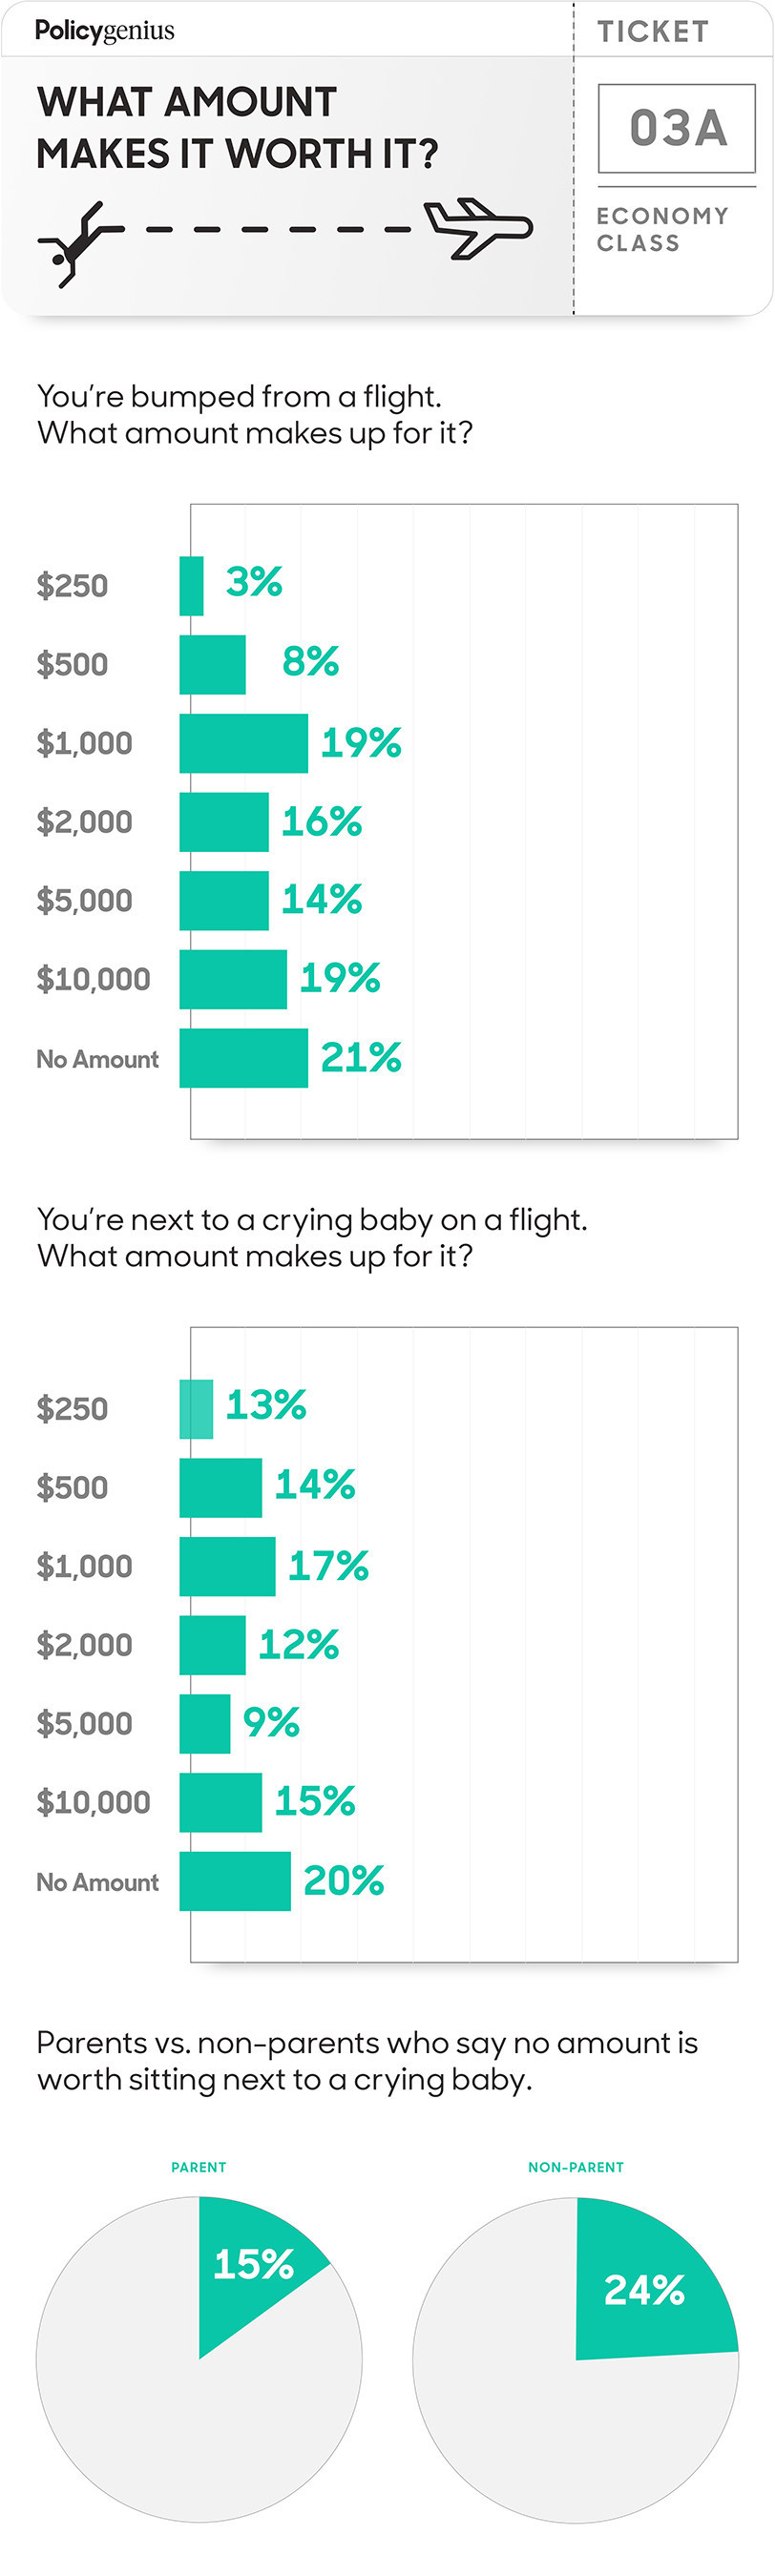 What amount is worth getting bumped from a flight?